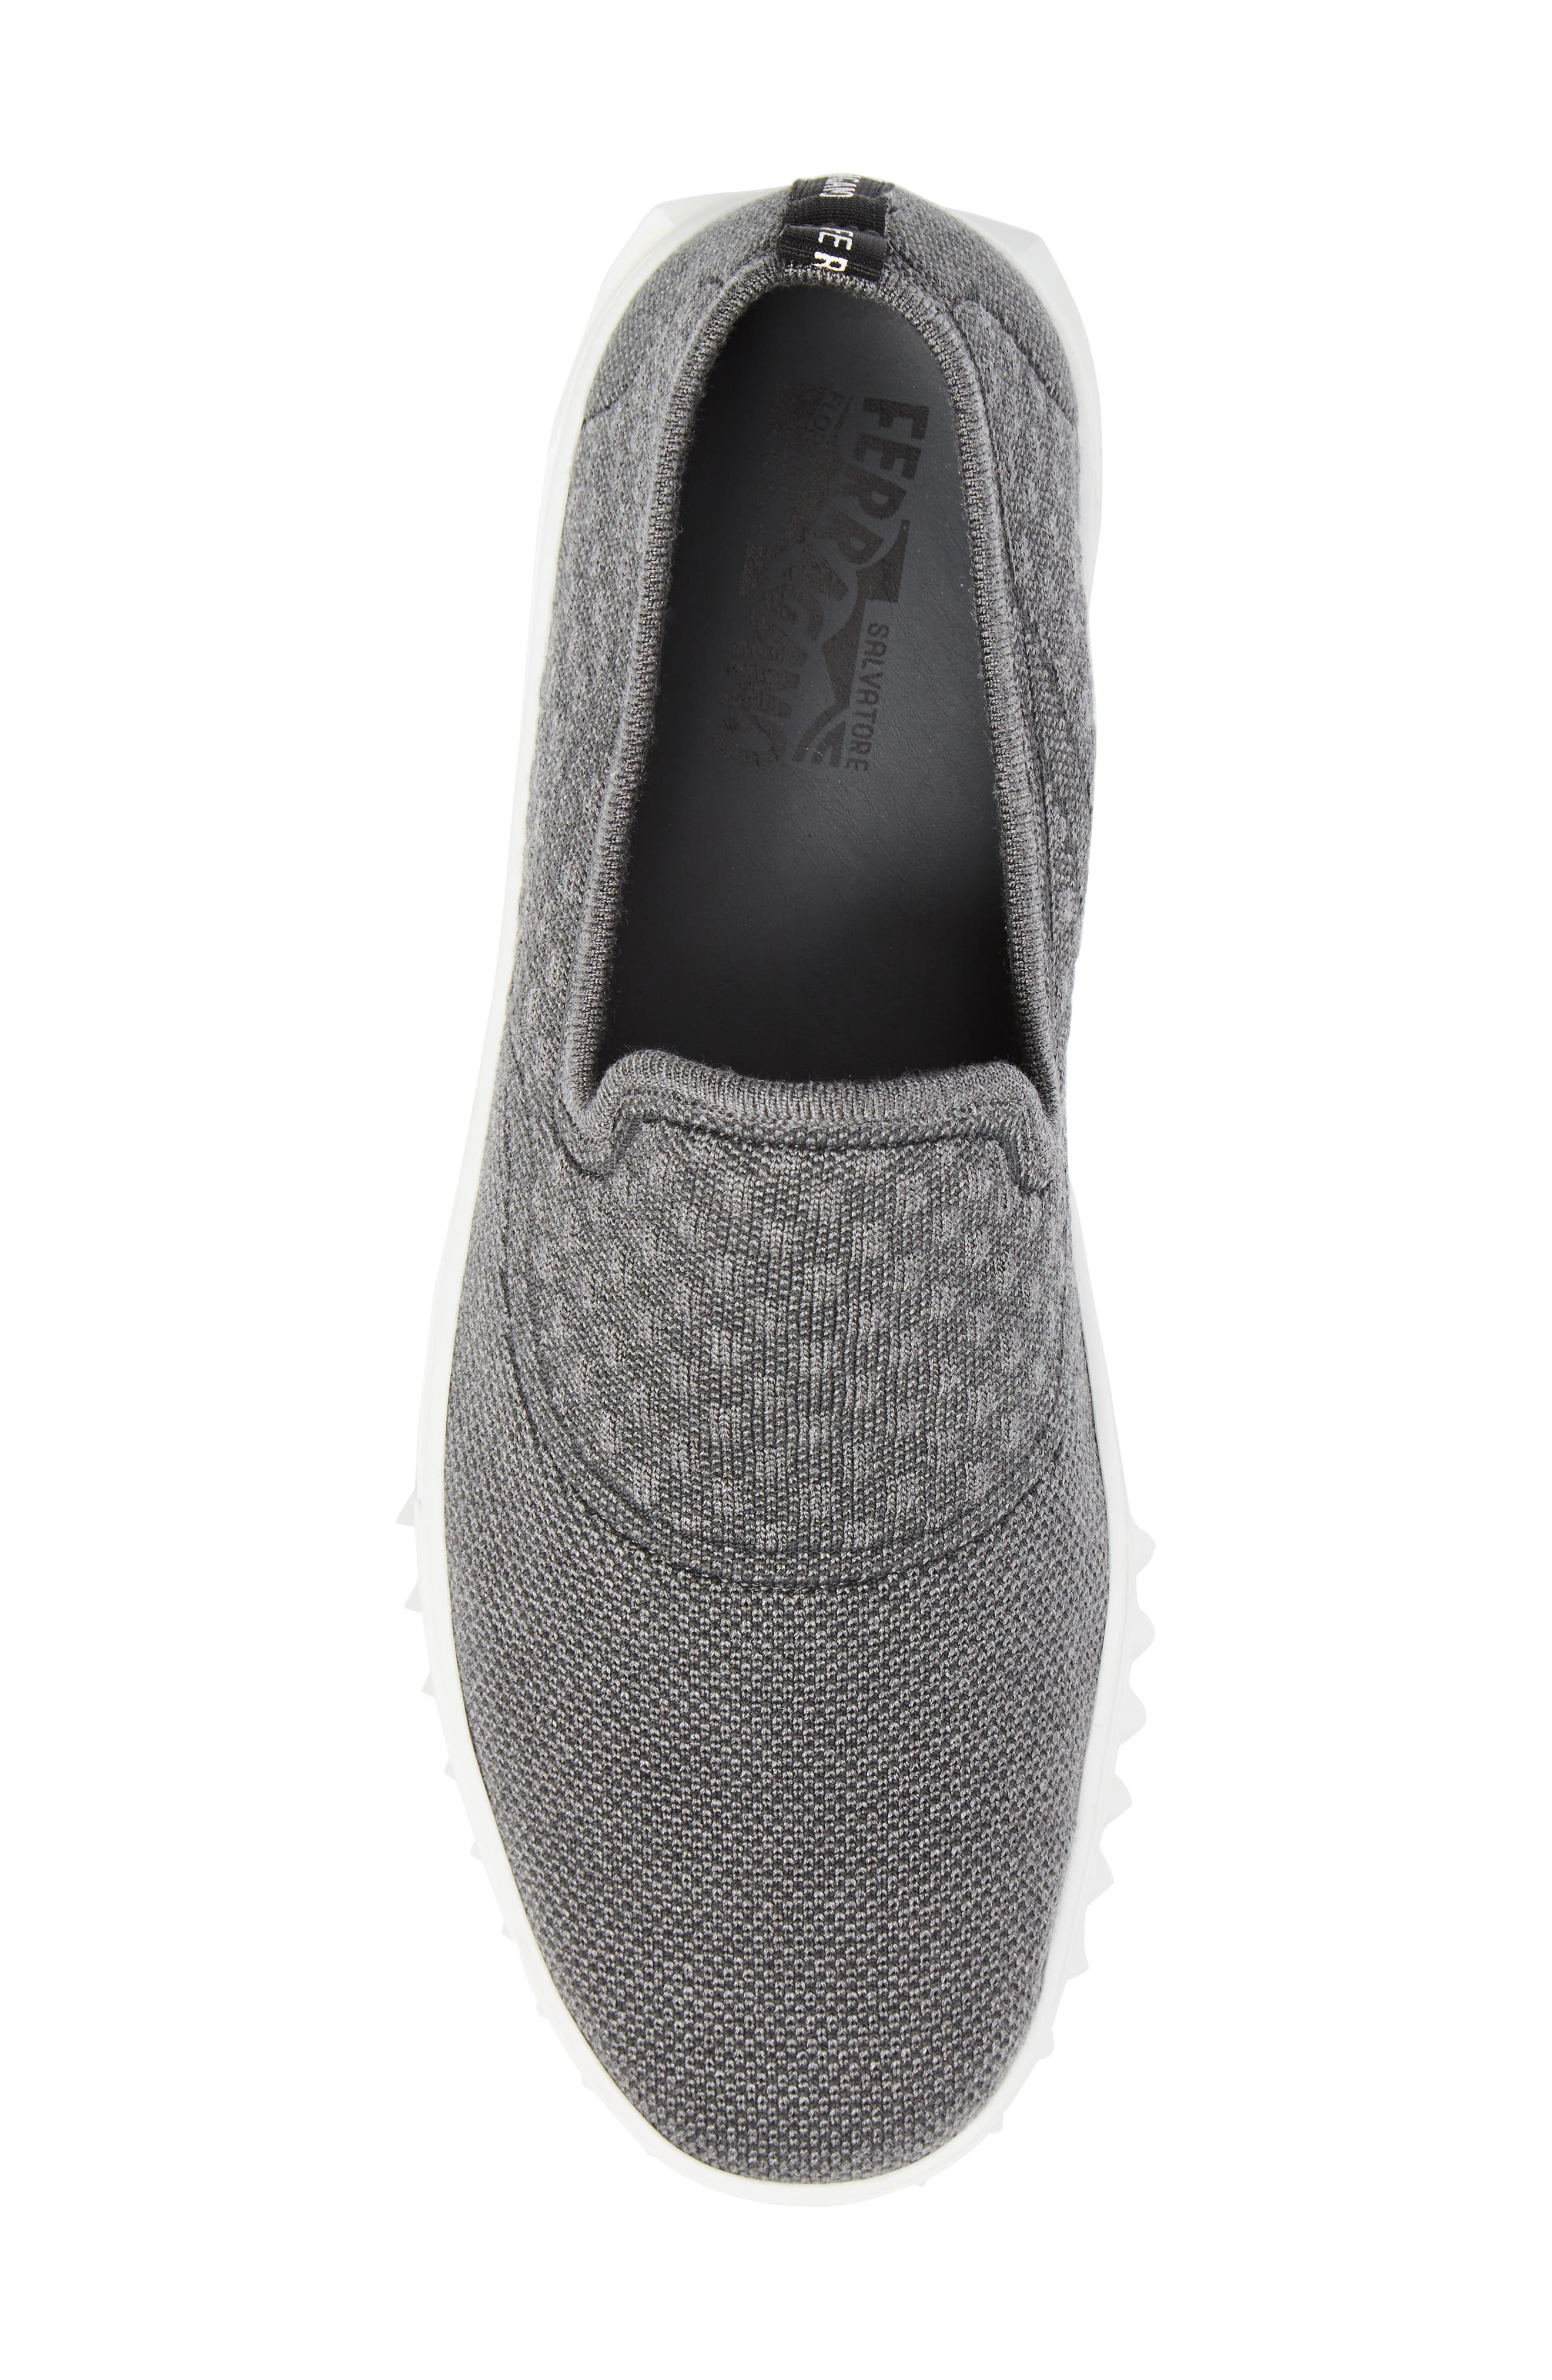 Clay Slip-On Sneaker,                             Alternate thumbnail 5, color,                             Charcoal